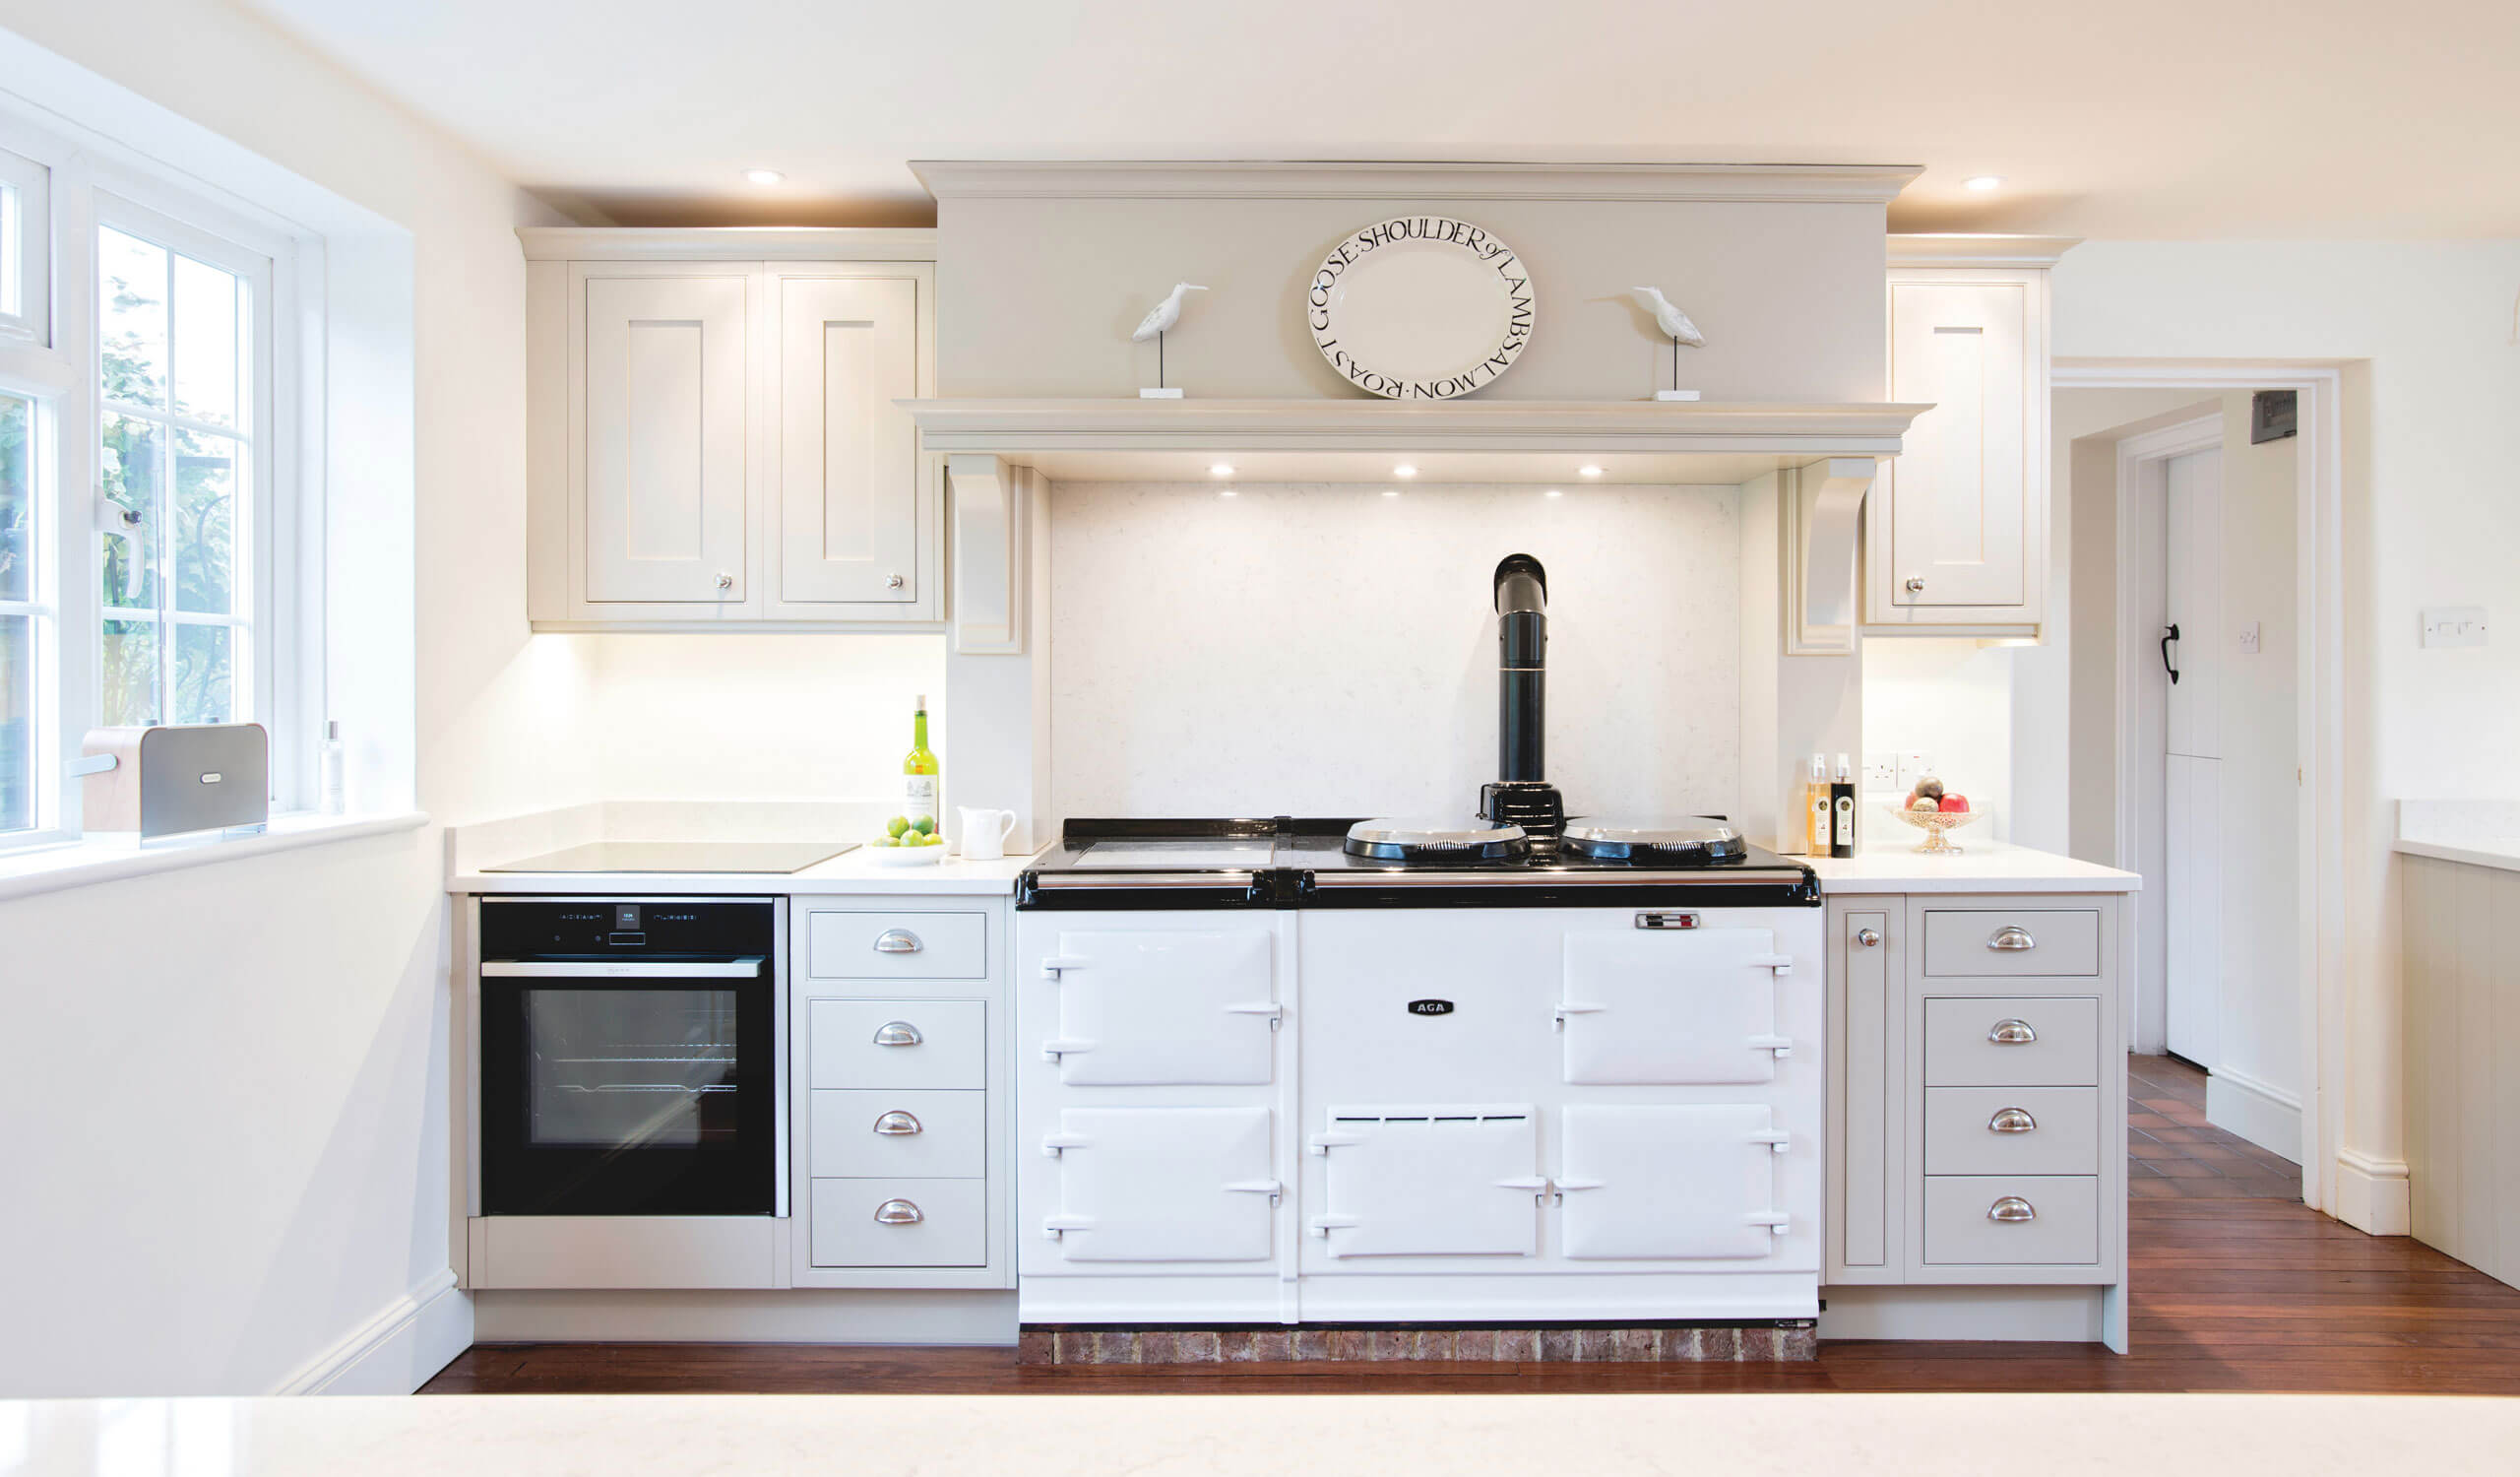 Country style kitchen cooking appliances